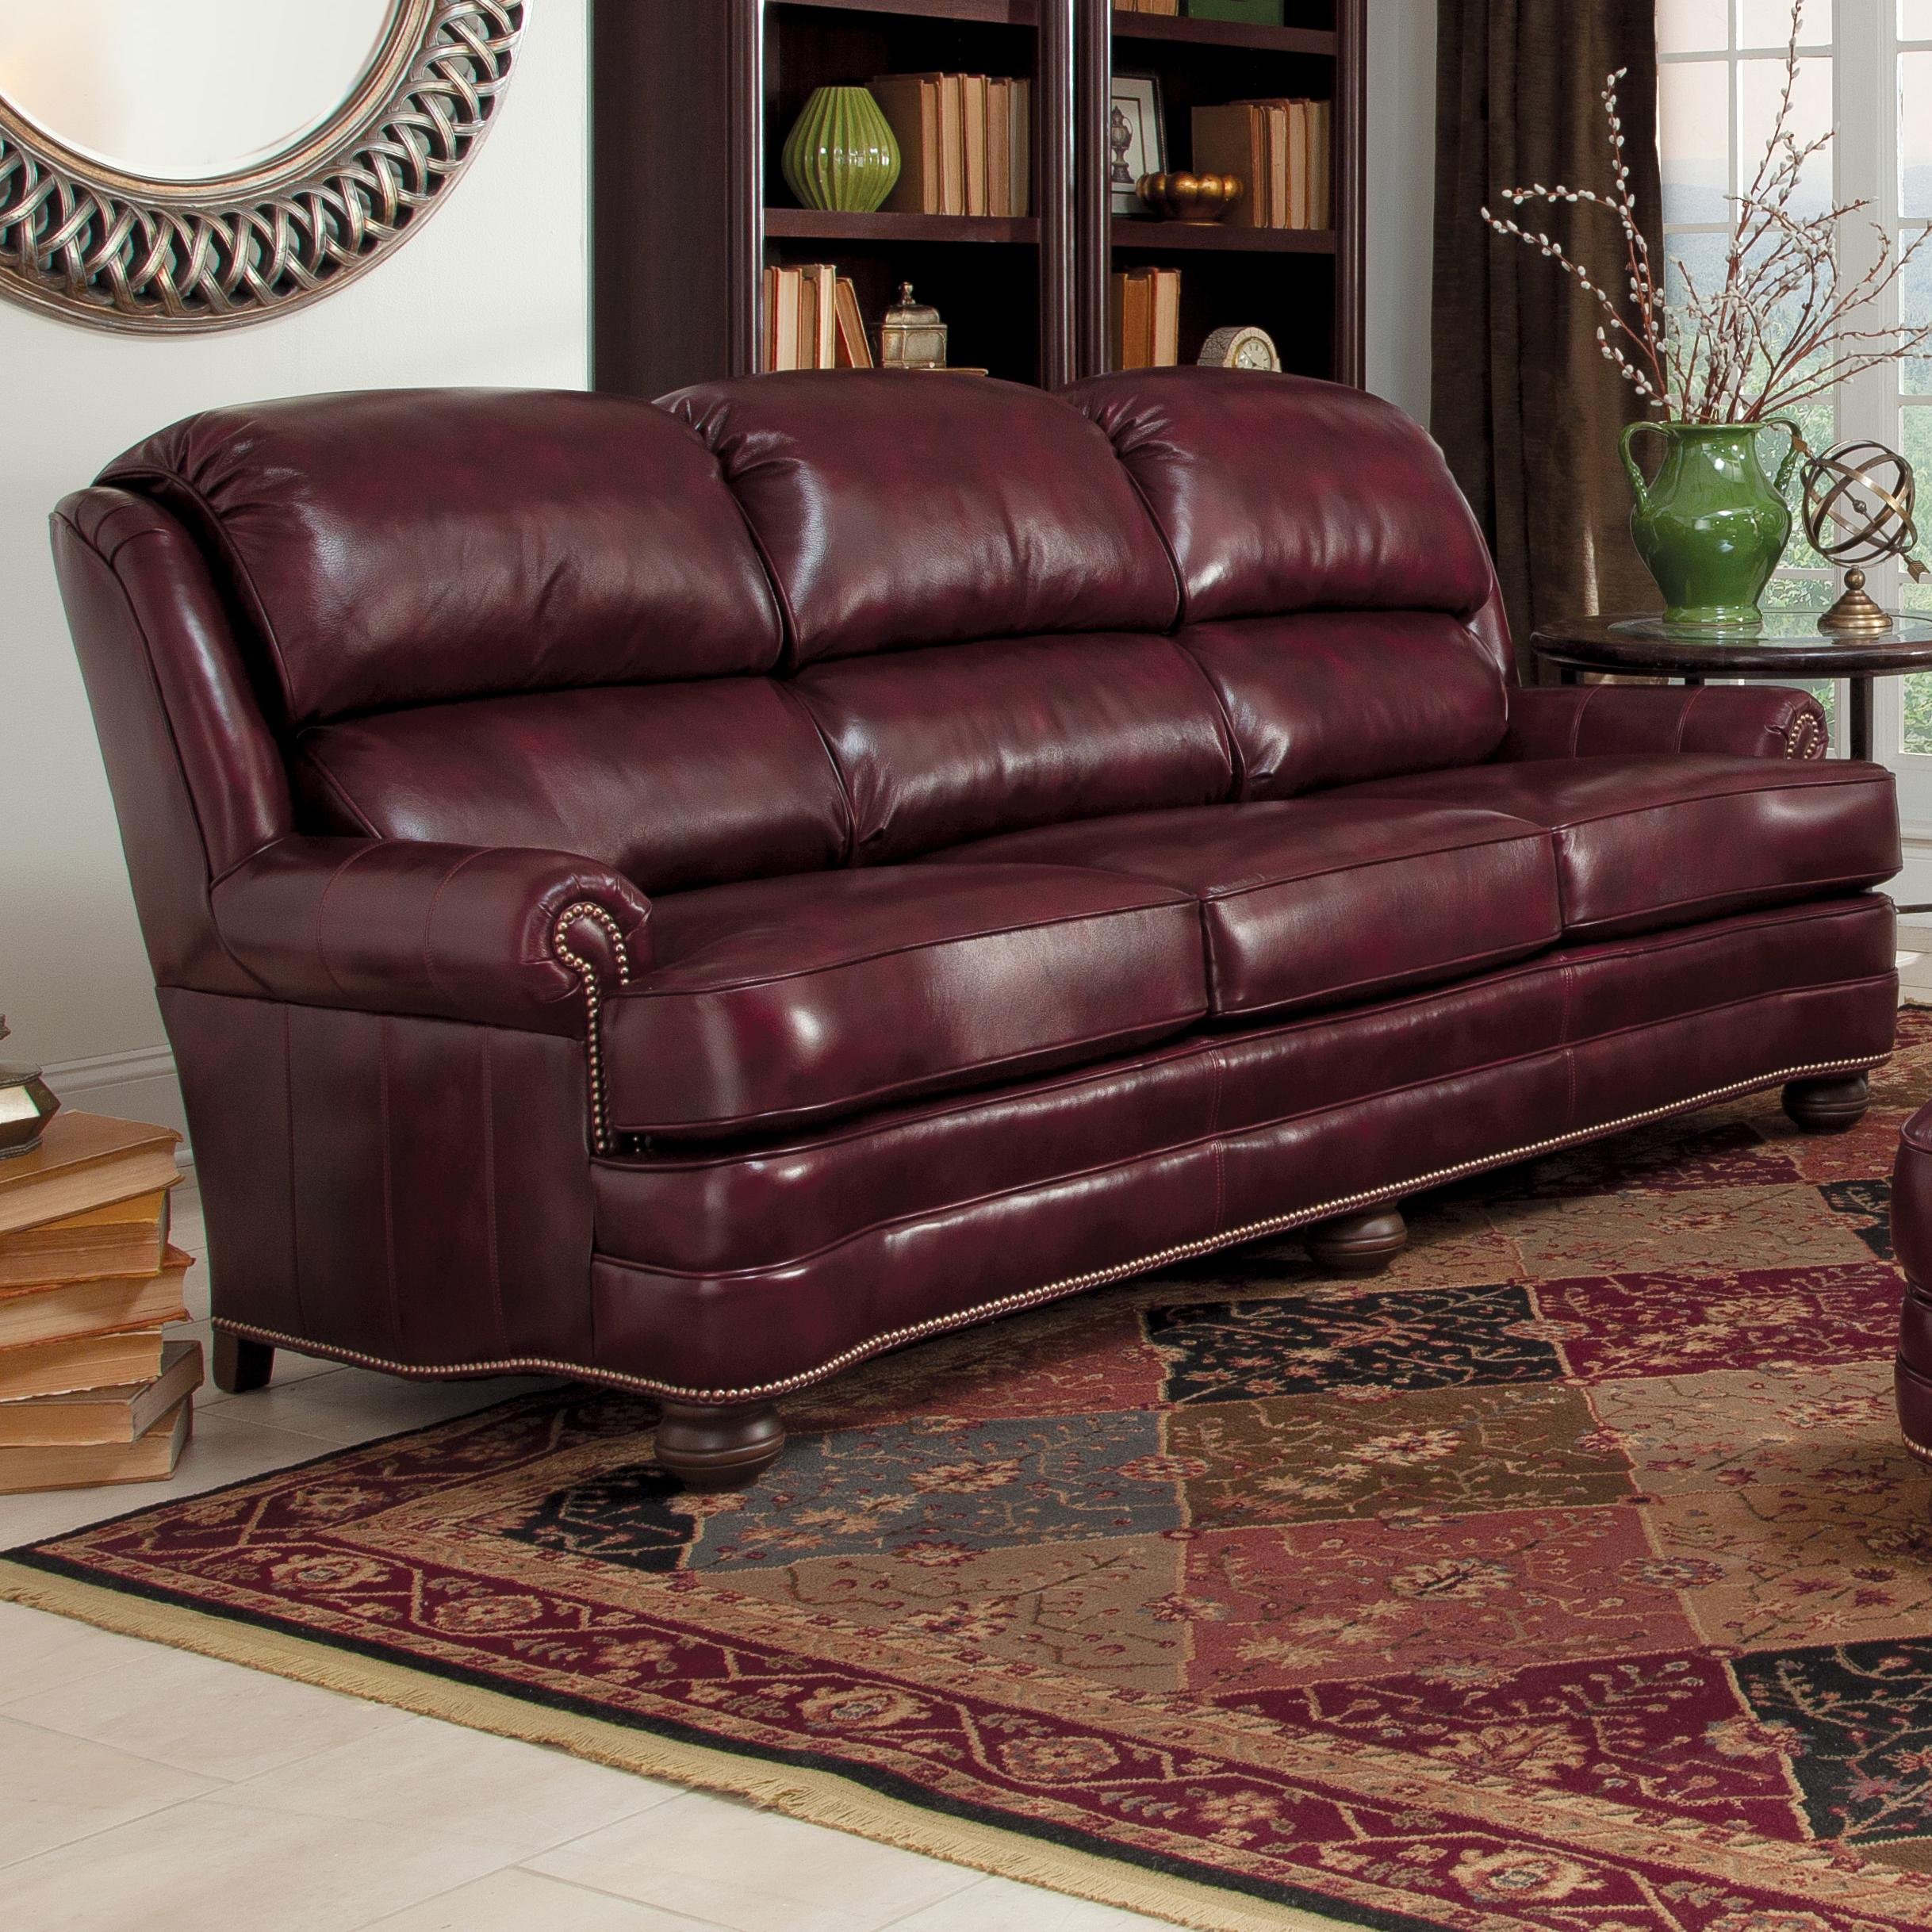 Incroyable Upholstered Leather Stationary Sofa